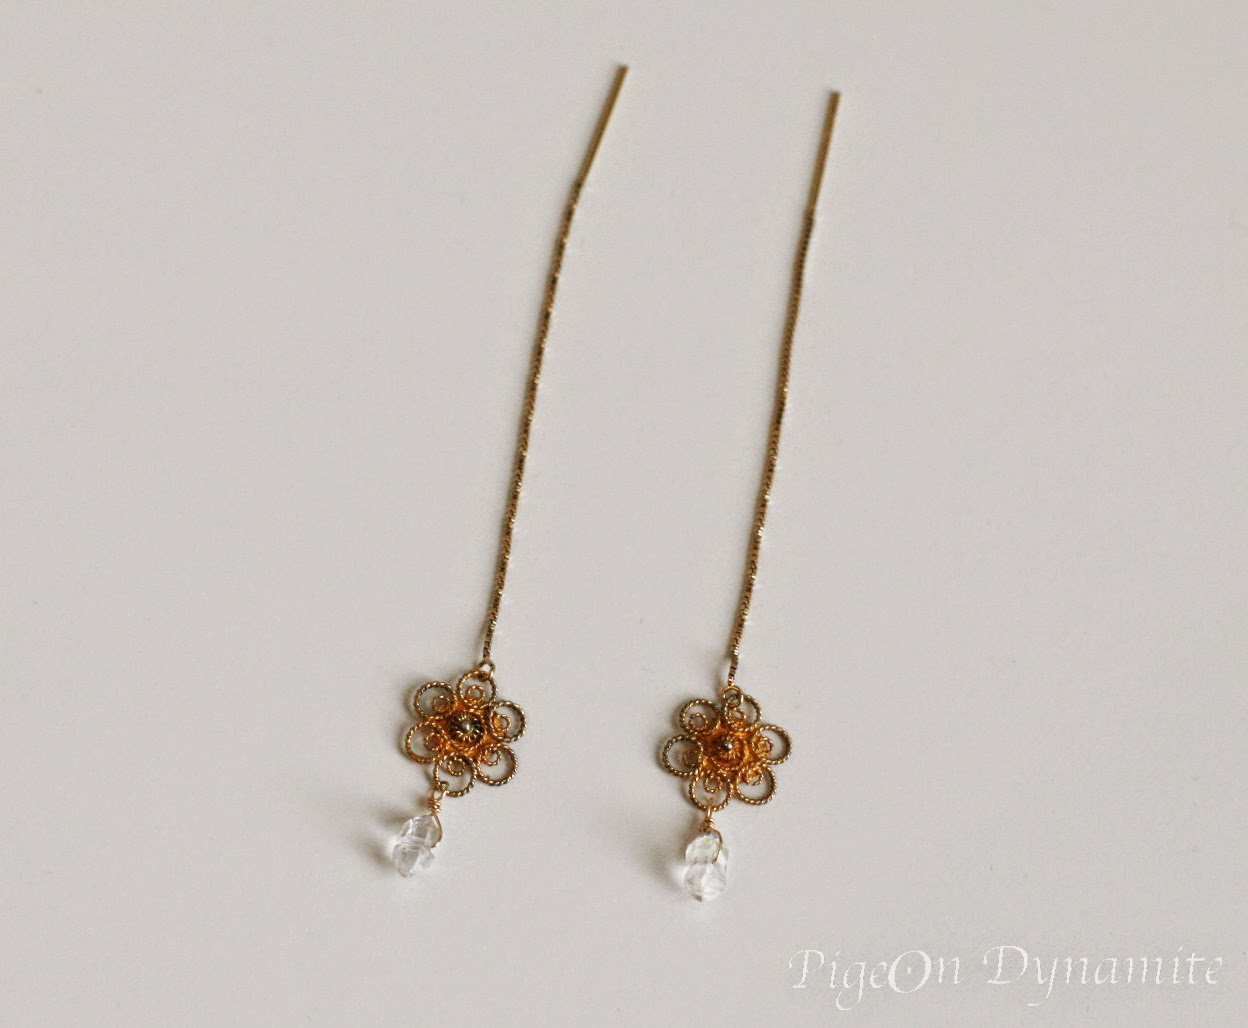 https://www.etsy.com/listing/227797503/herkimer-diamond-threader-earrings-with?ref=shop_home_active_1